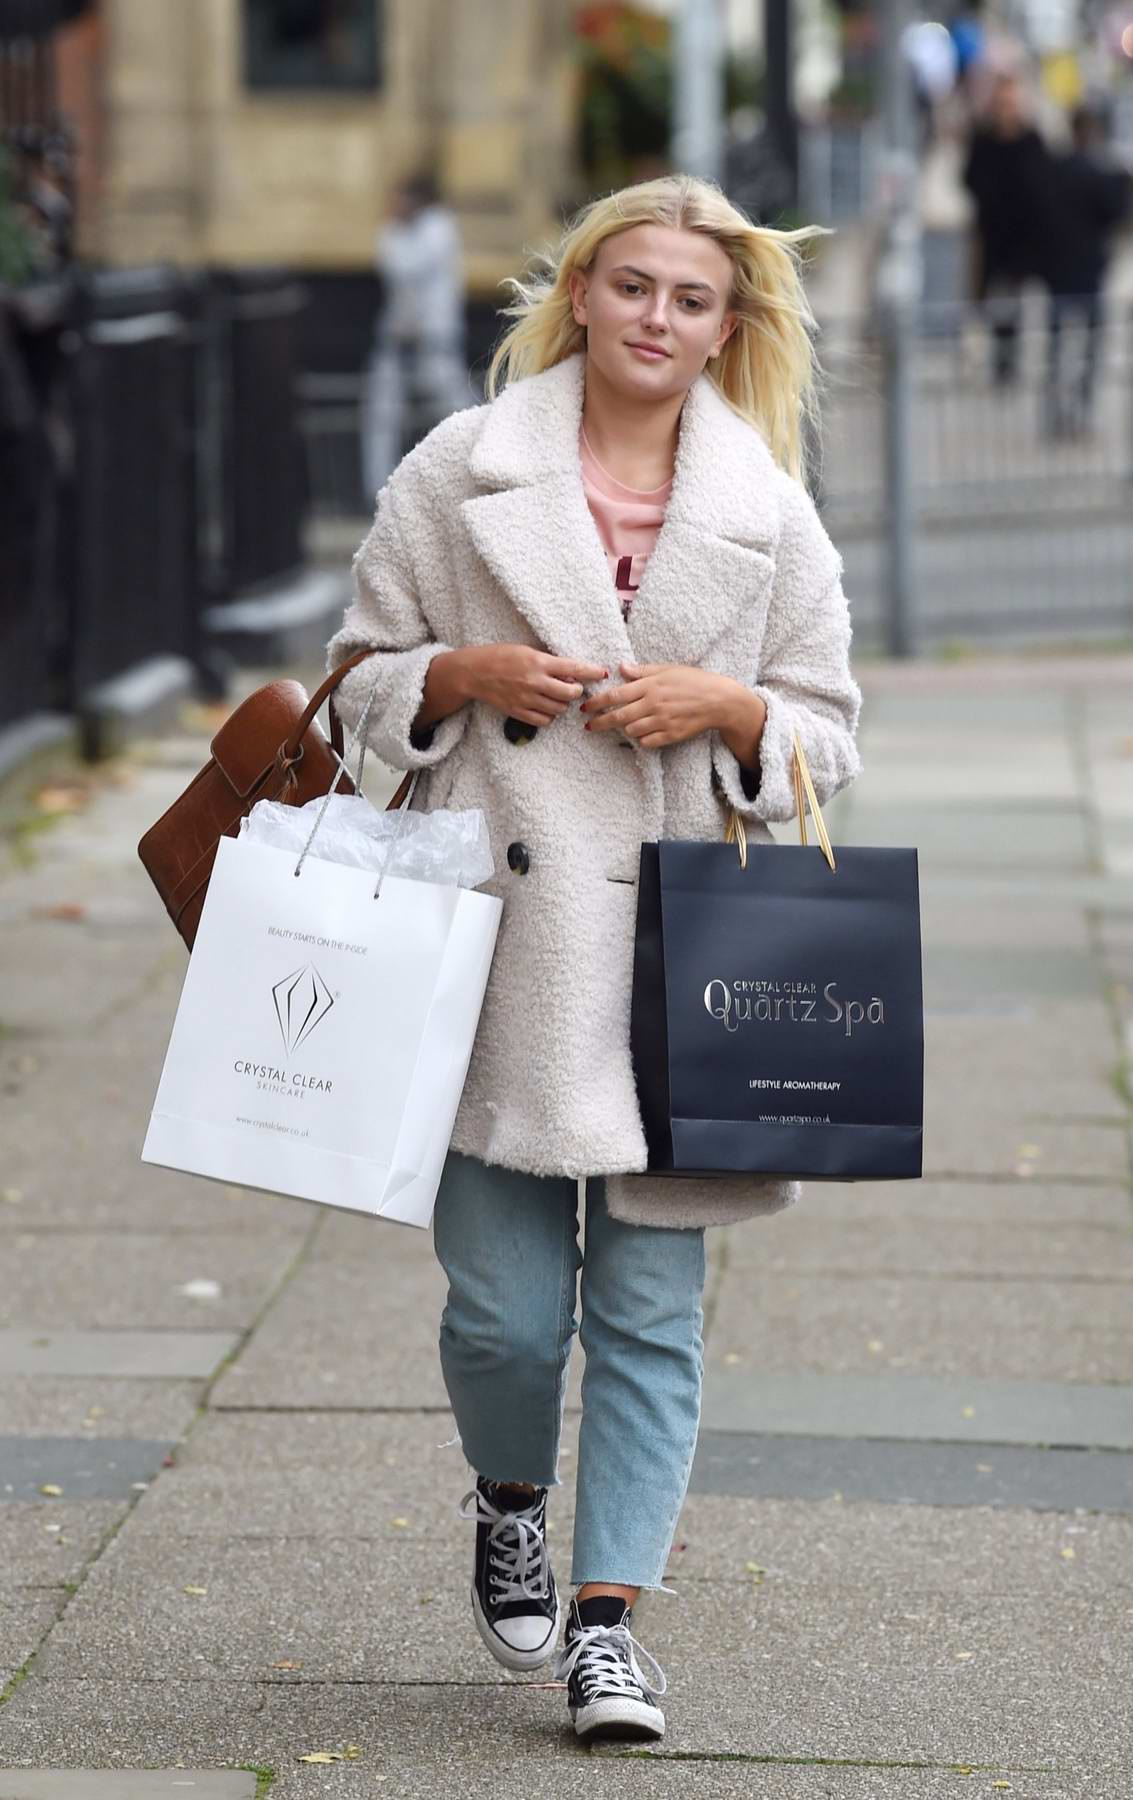 Lucy Fallon treats herself to a H20 Glow facial at Crystal Clear in Liverpool, UK